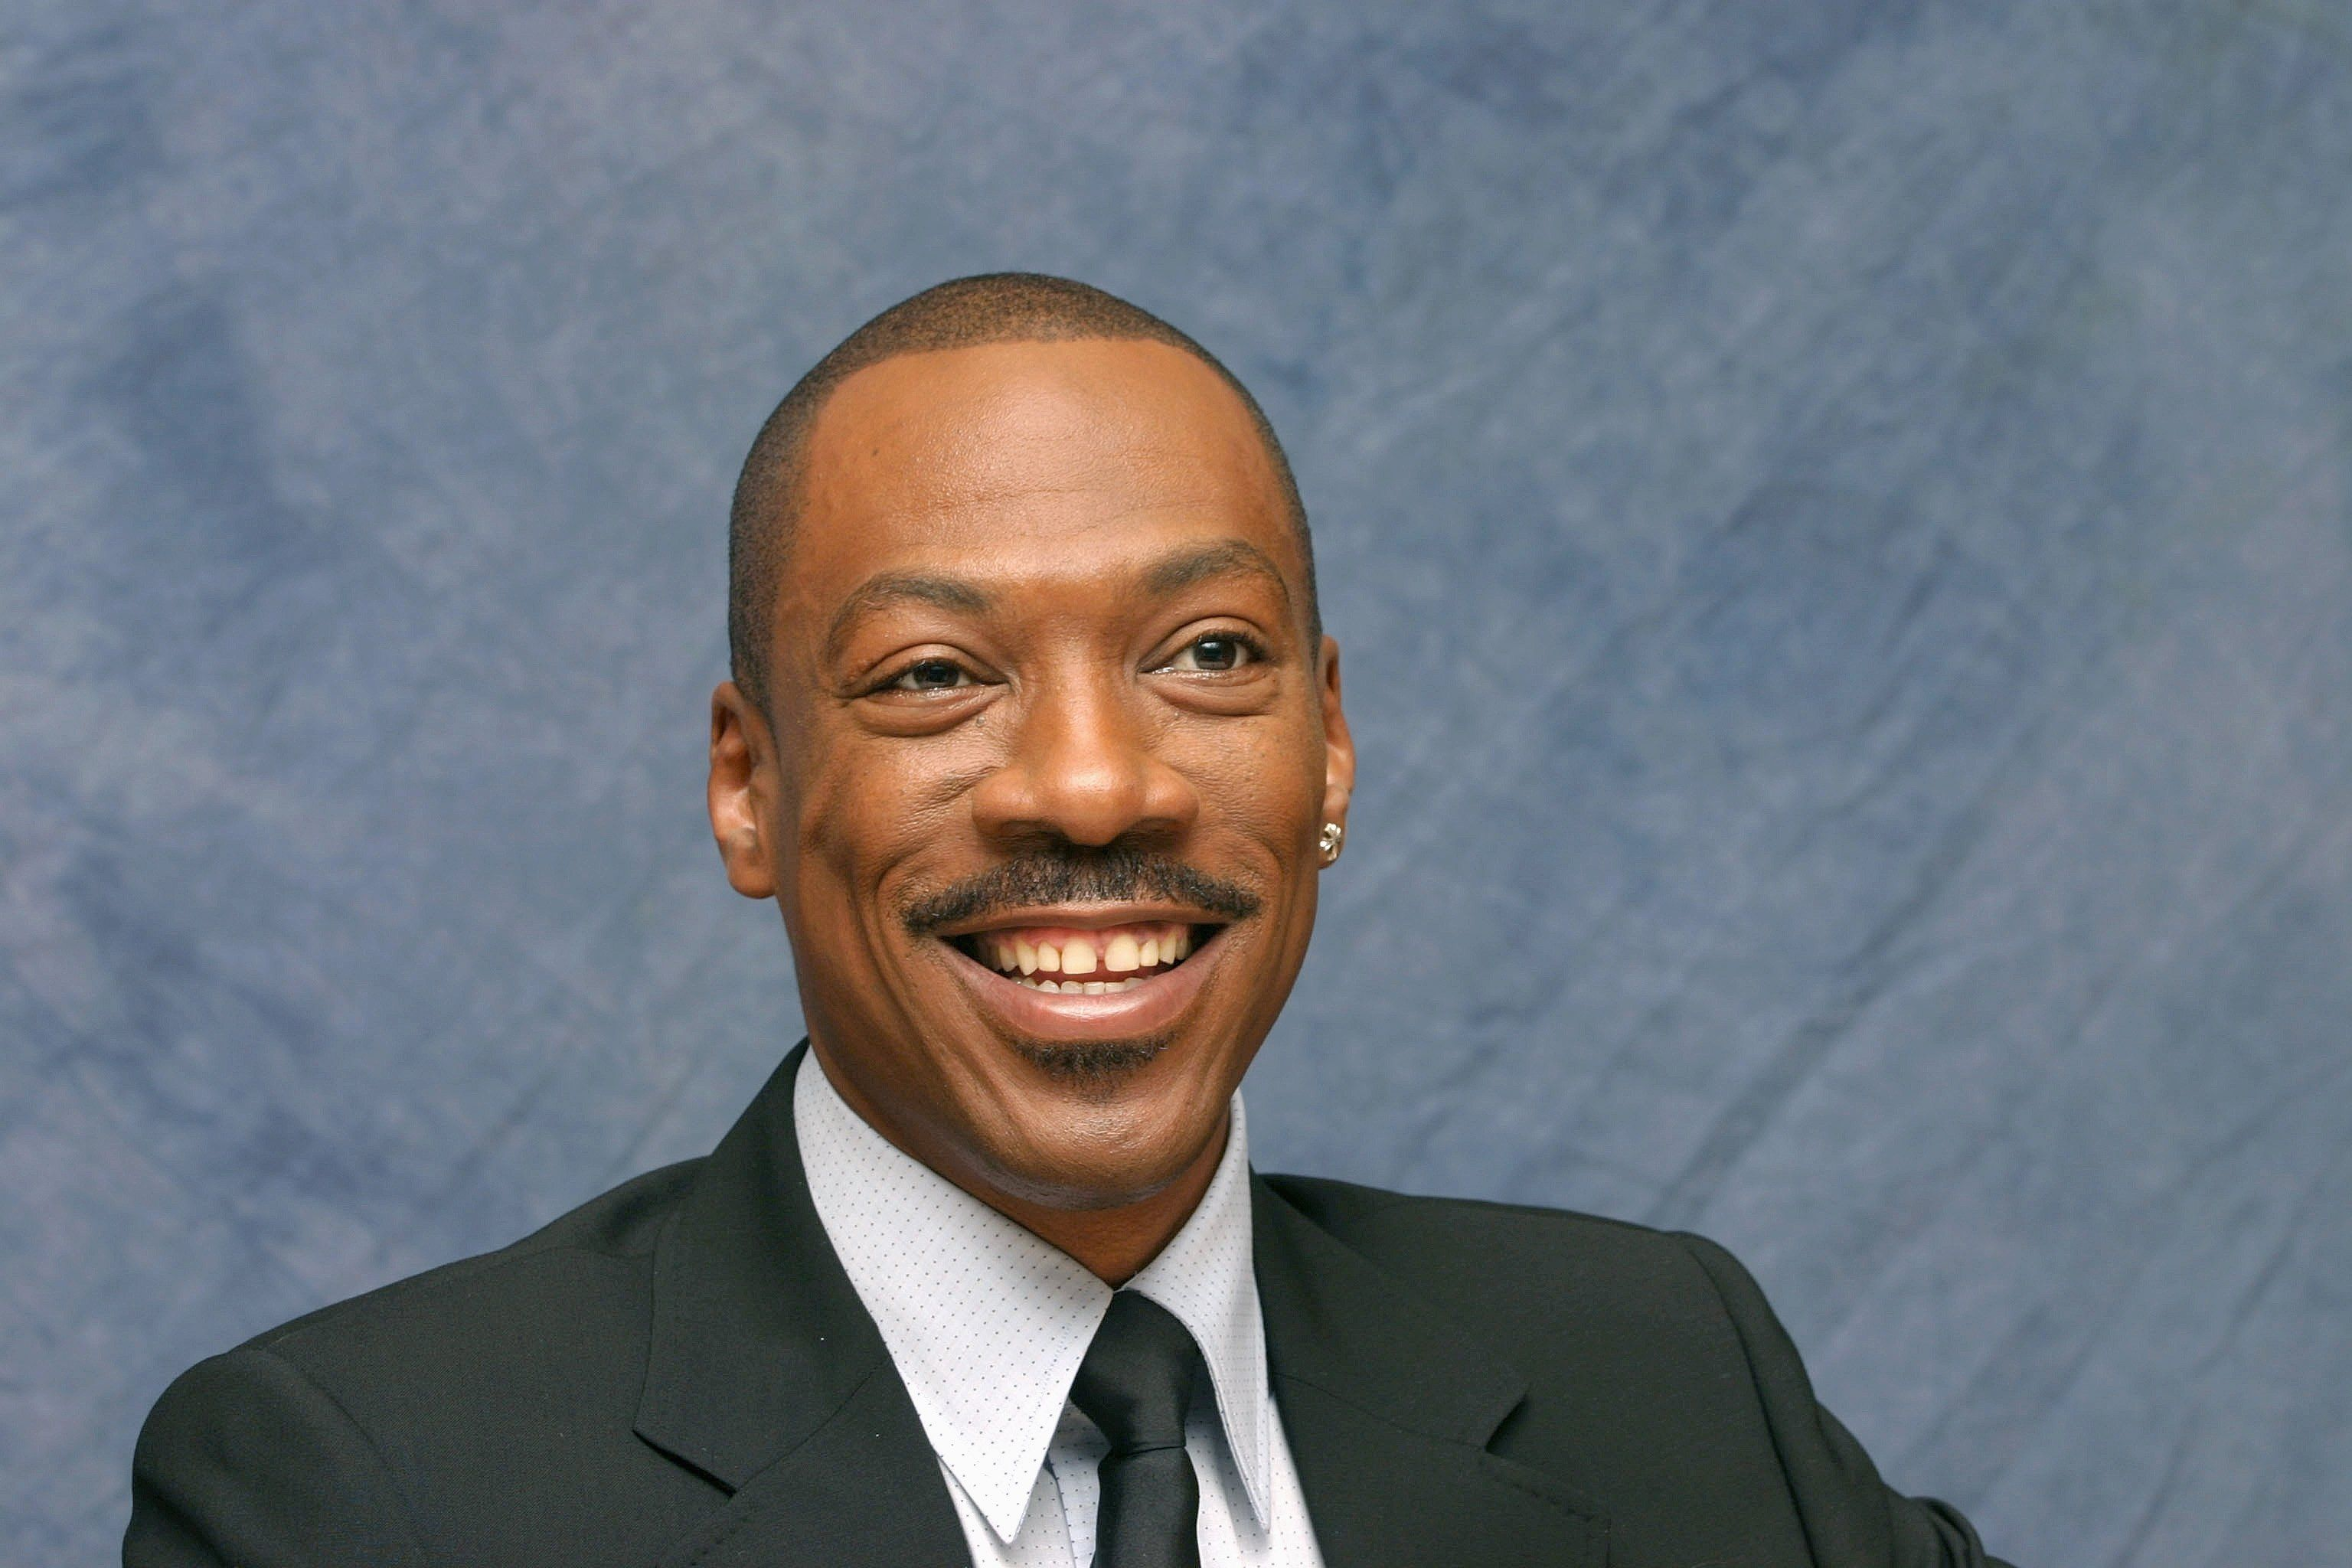 Eddie Murphy during a press conference at the Beverly Hilton Hotel on November 17, 2006 in Beverly Hills, California. | Source: Getty Images